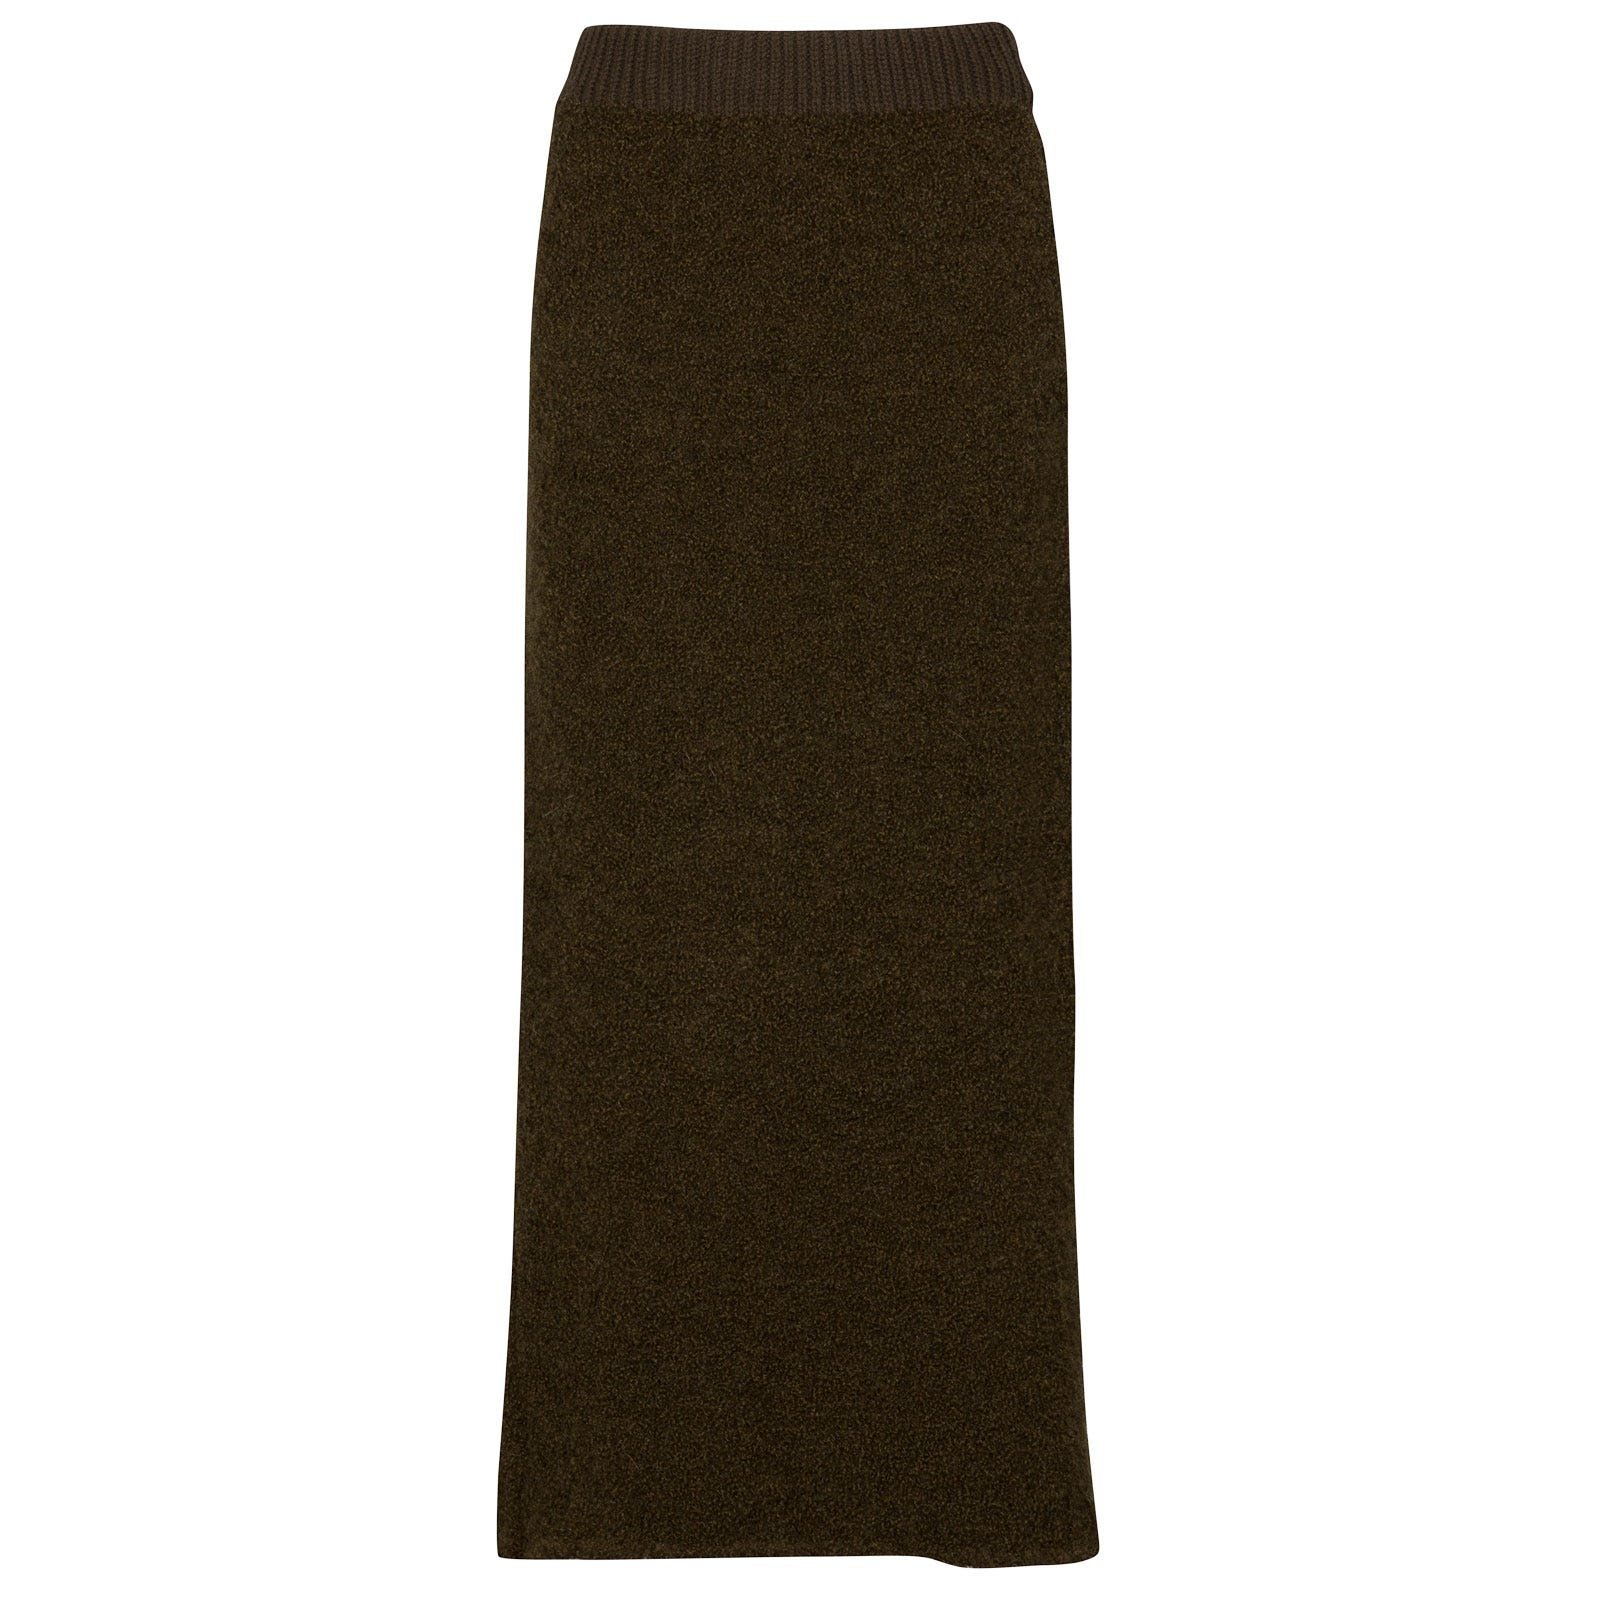 John Smedley orford Alpaca & Wool Skirt in Kielder Green-S